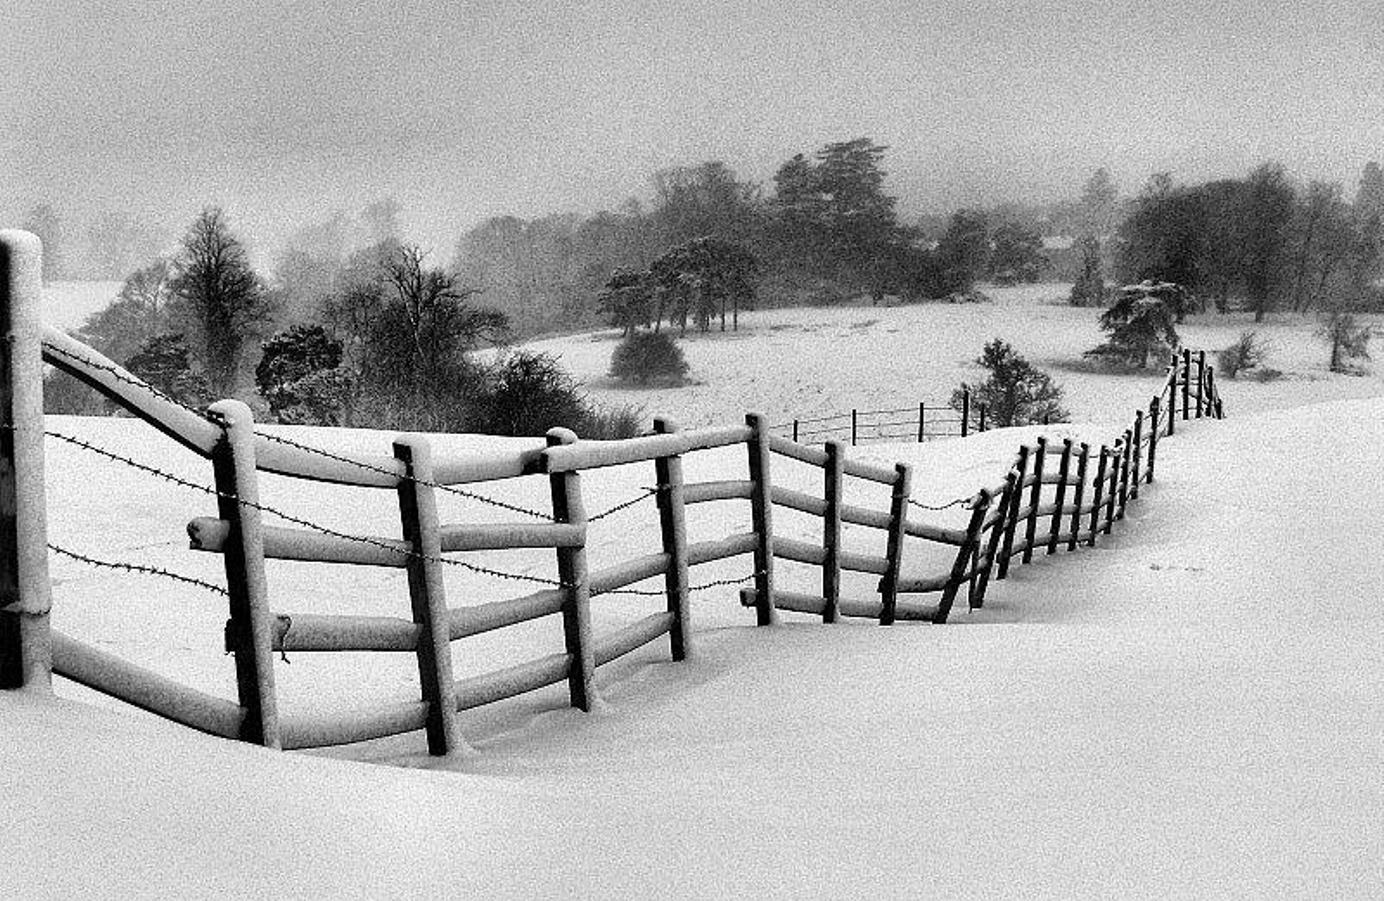 Winter In Black And White >> Download Winter Pictures Black And White Black White Winter Scene